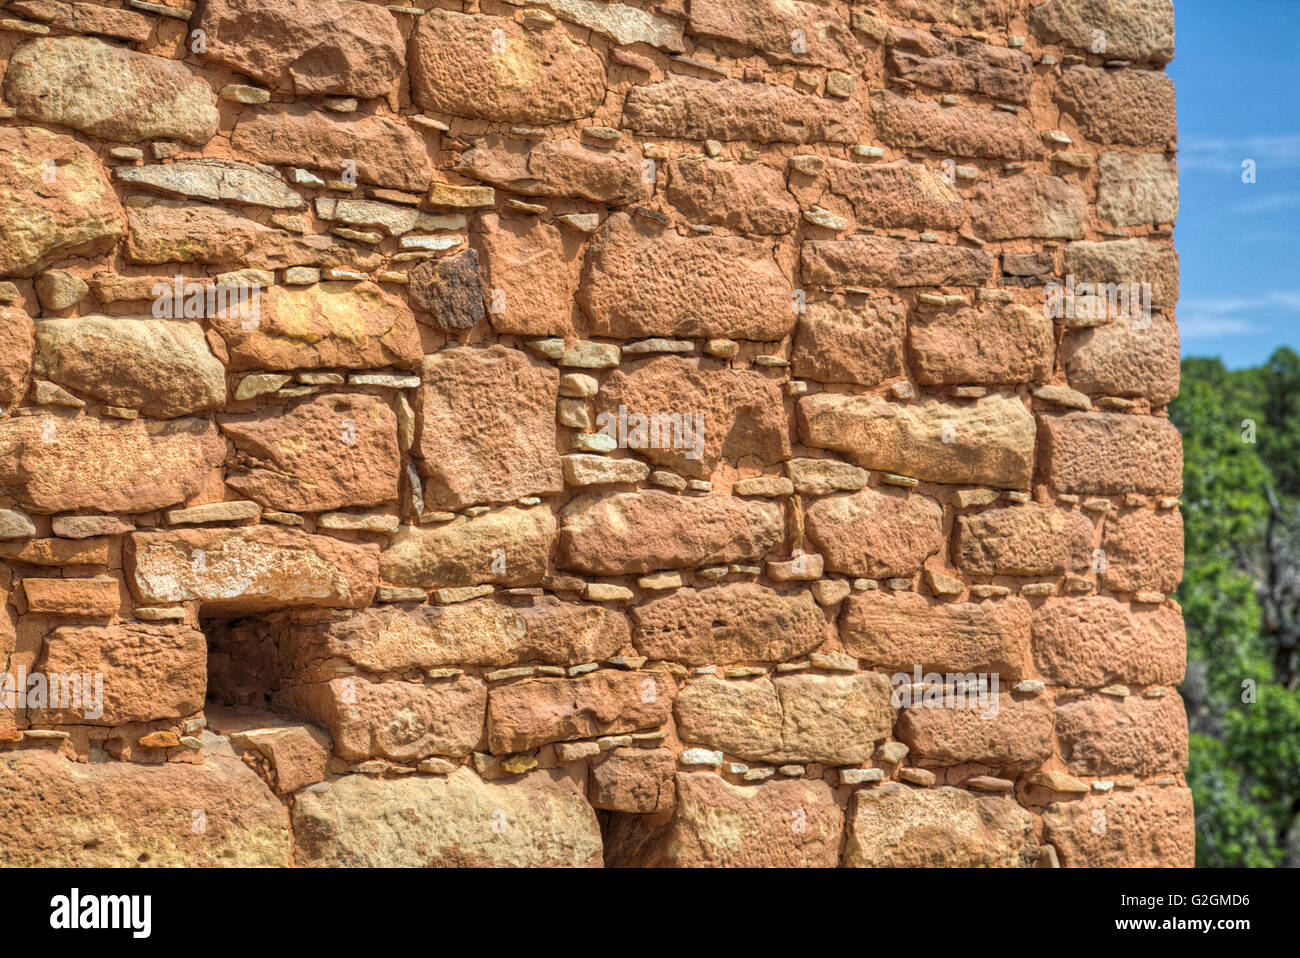 Intricate Stonework, Holly Group, Anasazi Ruins, dates from A.D. 1230-1275, Hovenweep National Monument, Utah, USA - Stock Image